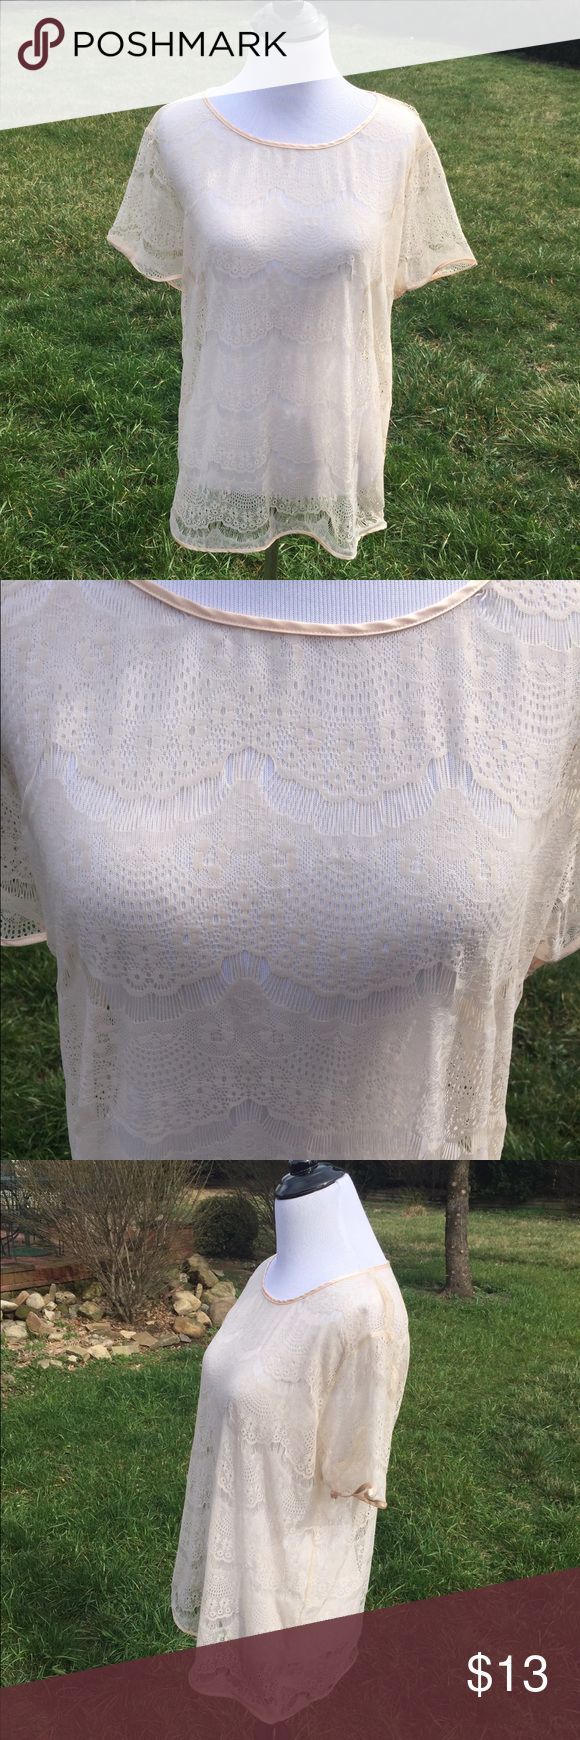 American Apparel Cream Lace Top Cream sheer lace top from American Apparel, size medium/large. I typically wear a medium and I think it fits a medium best. Top is sheer so I wore a cream cami underneath. Good condition, only worn a few times. American Apparel Tops Blouses